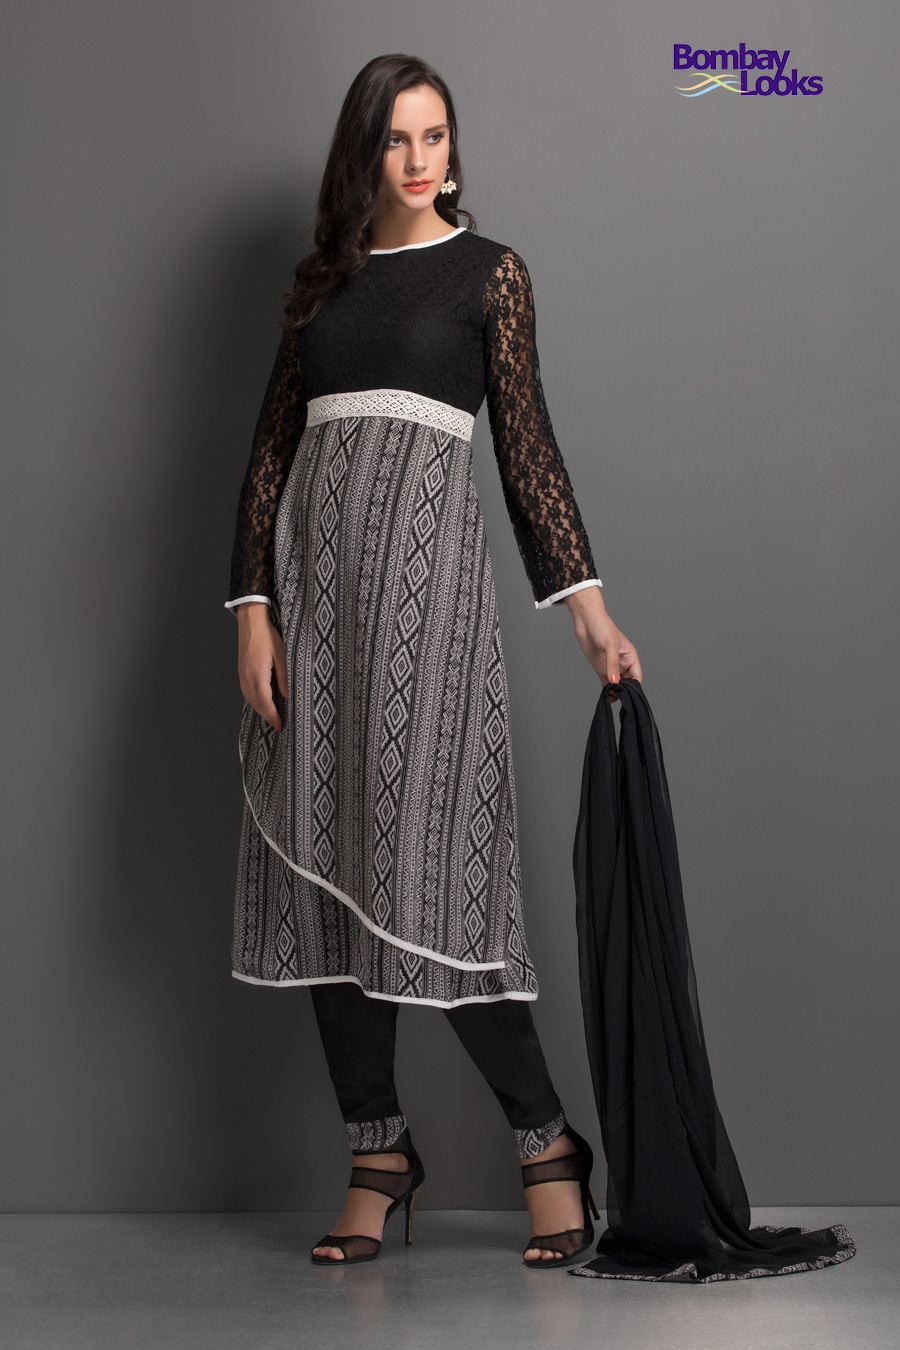 Gogeous abstract printed dress in black with lacey sleeves